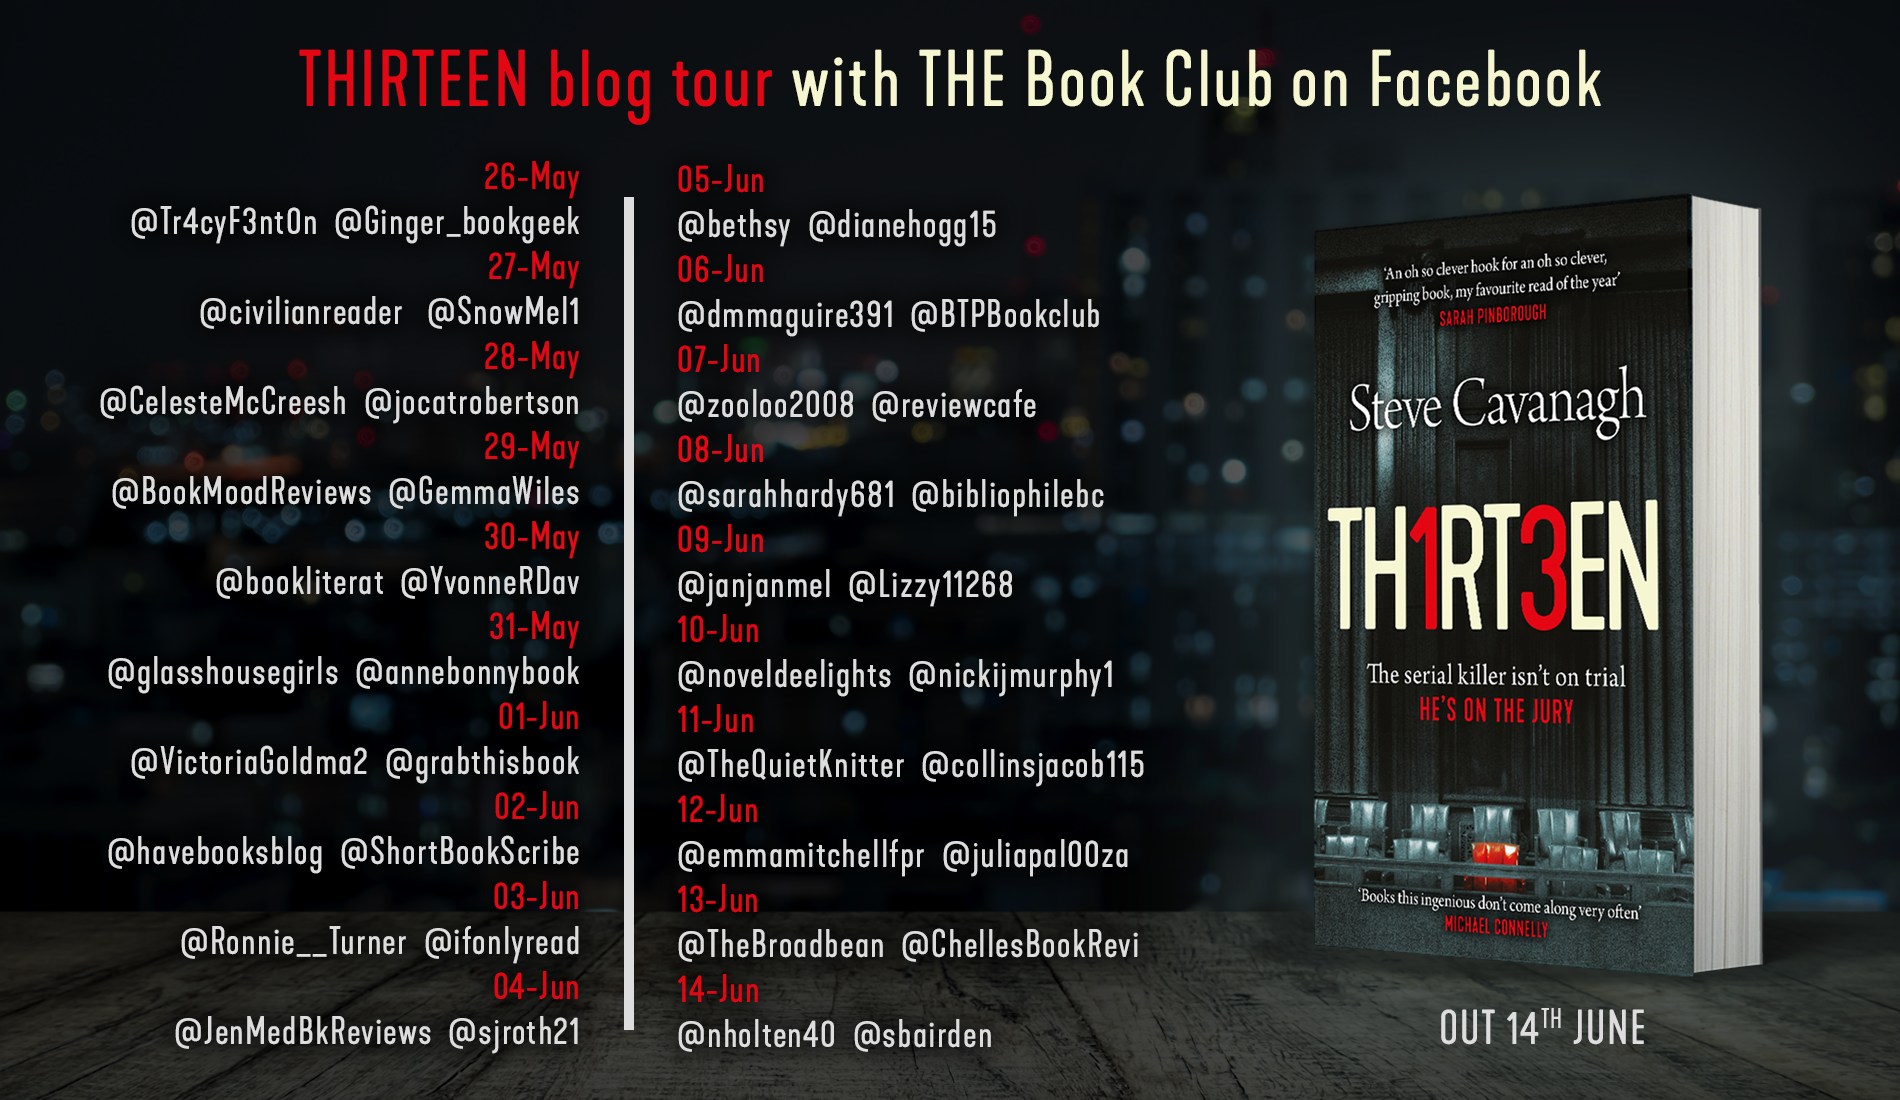 THIRTEEN BLOG TOUR (002)